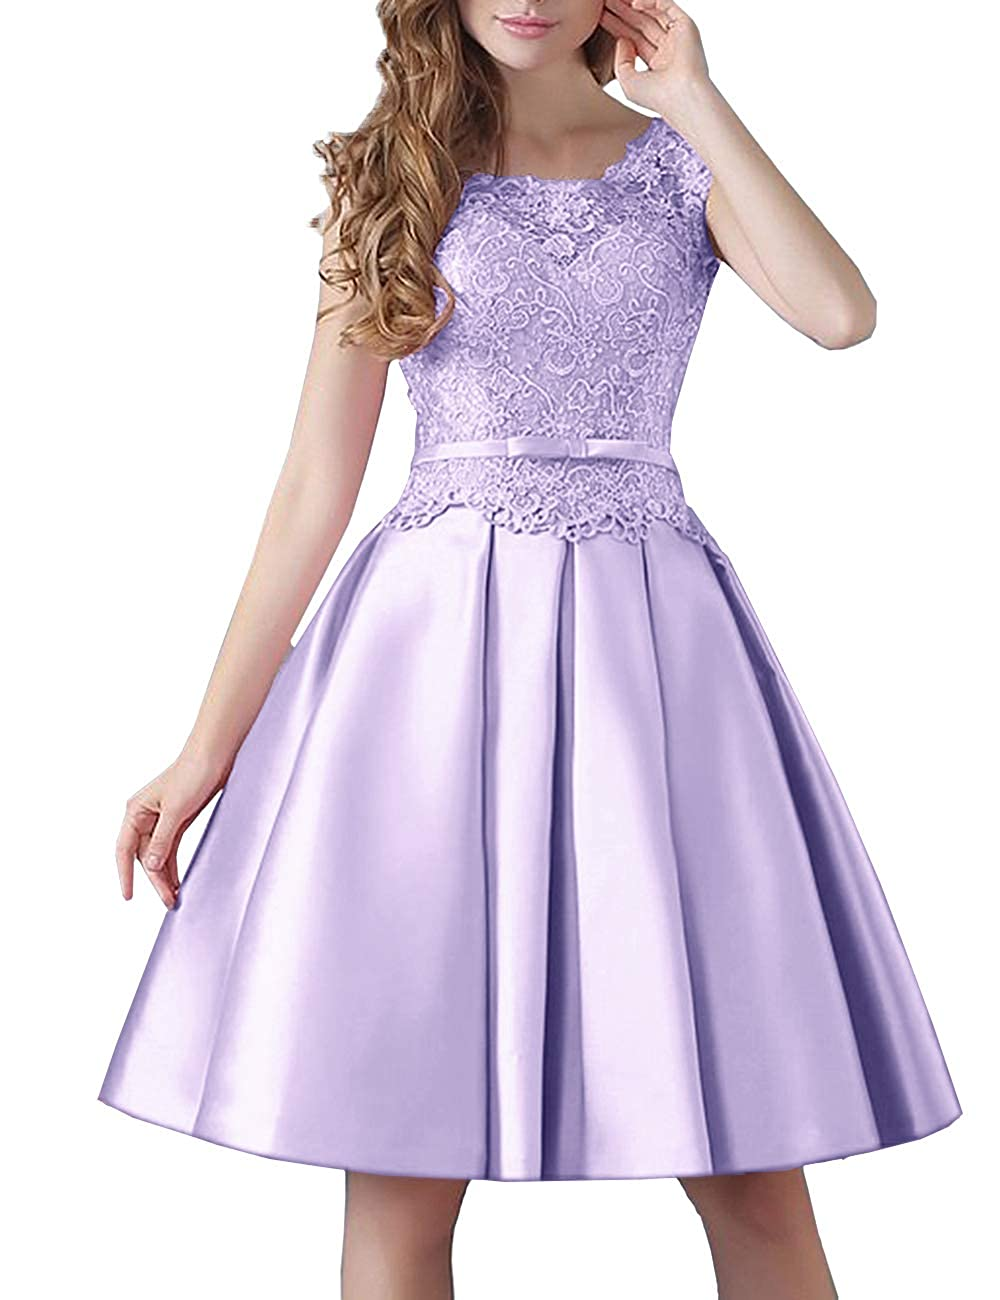 Lavender Uther Prom KneeLength Lace Cocktail Dress Short Stain Homecoming Dresses for Girls